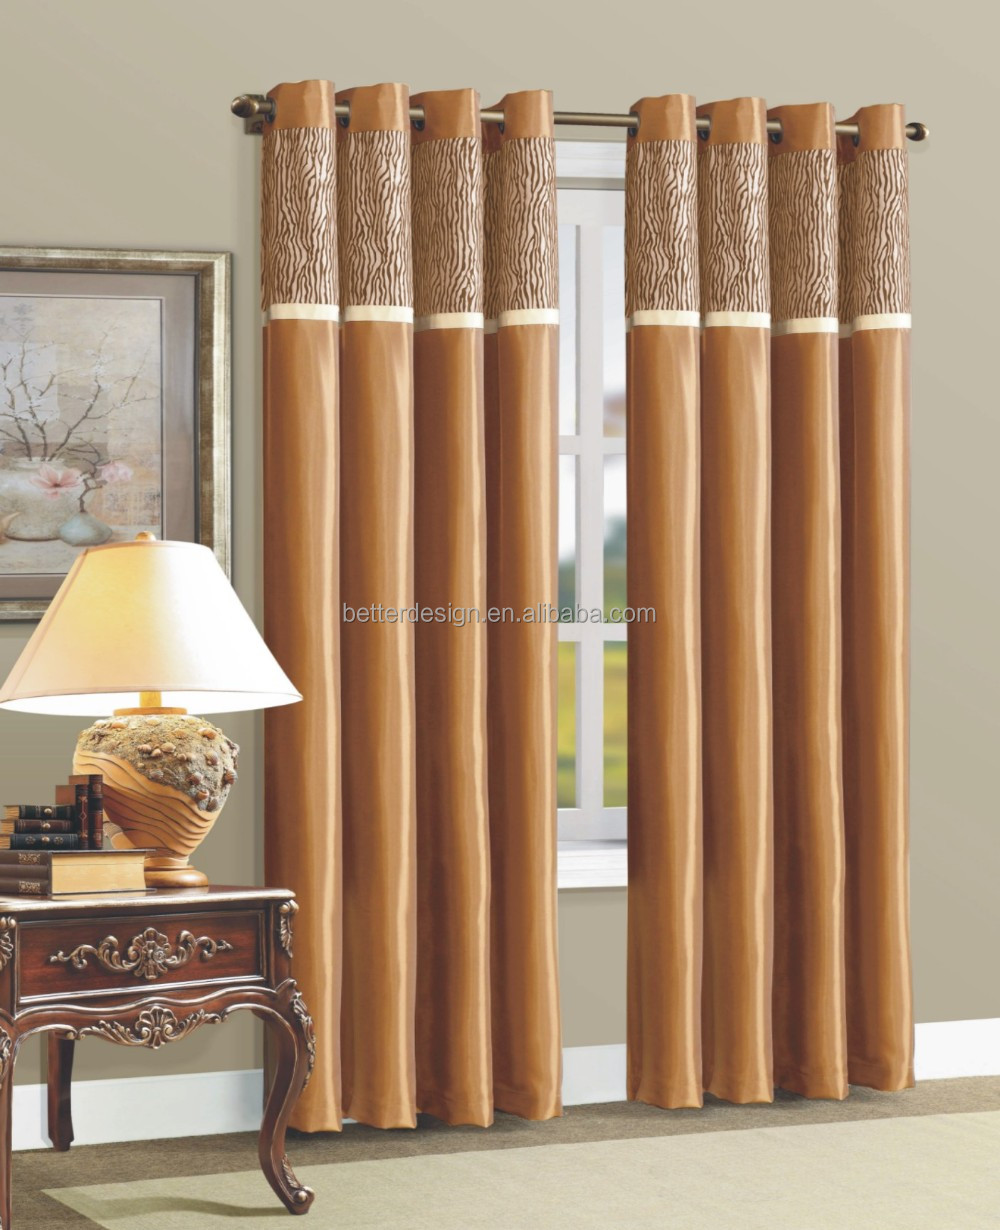 Poly Cotton Window Curtains For The Living Room